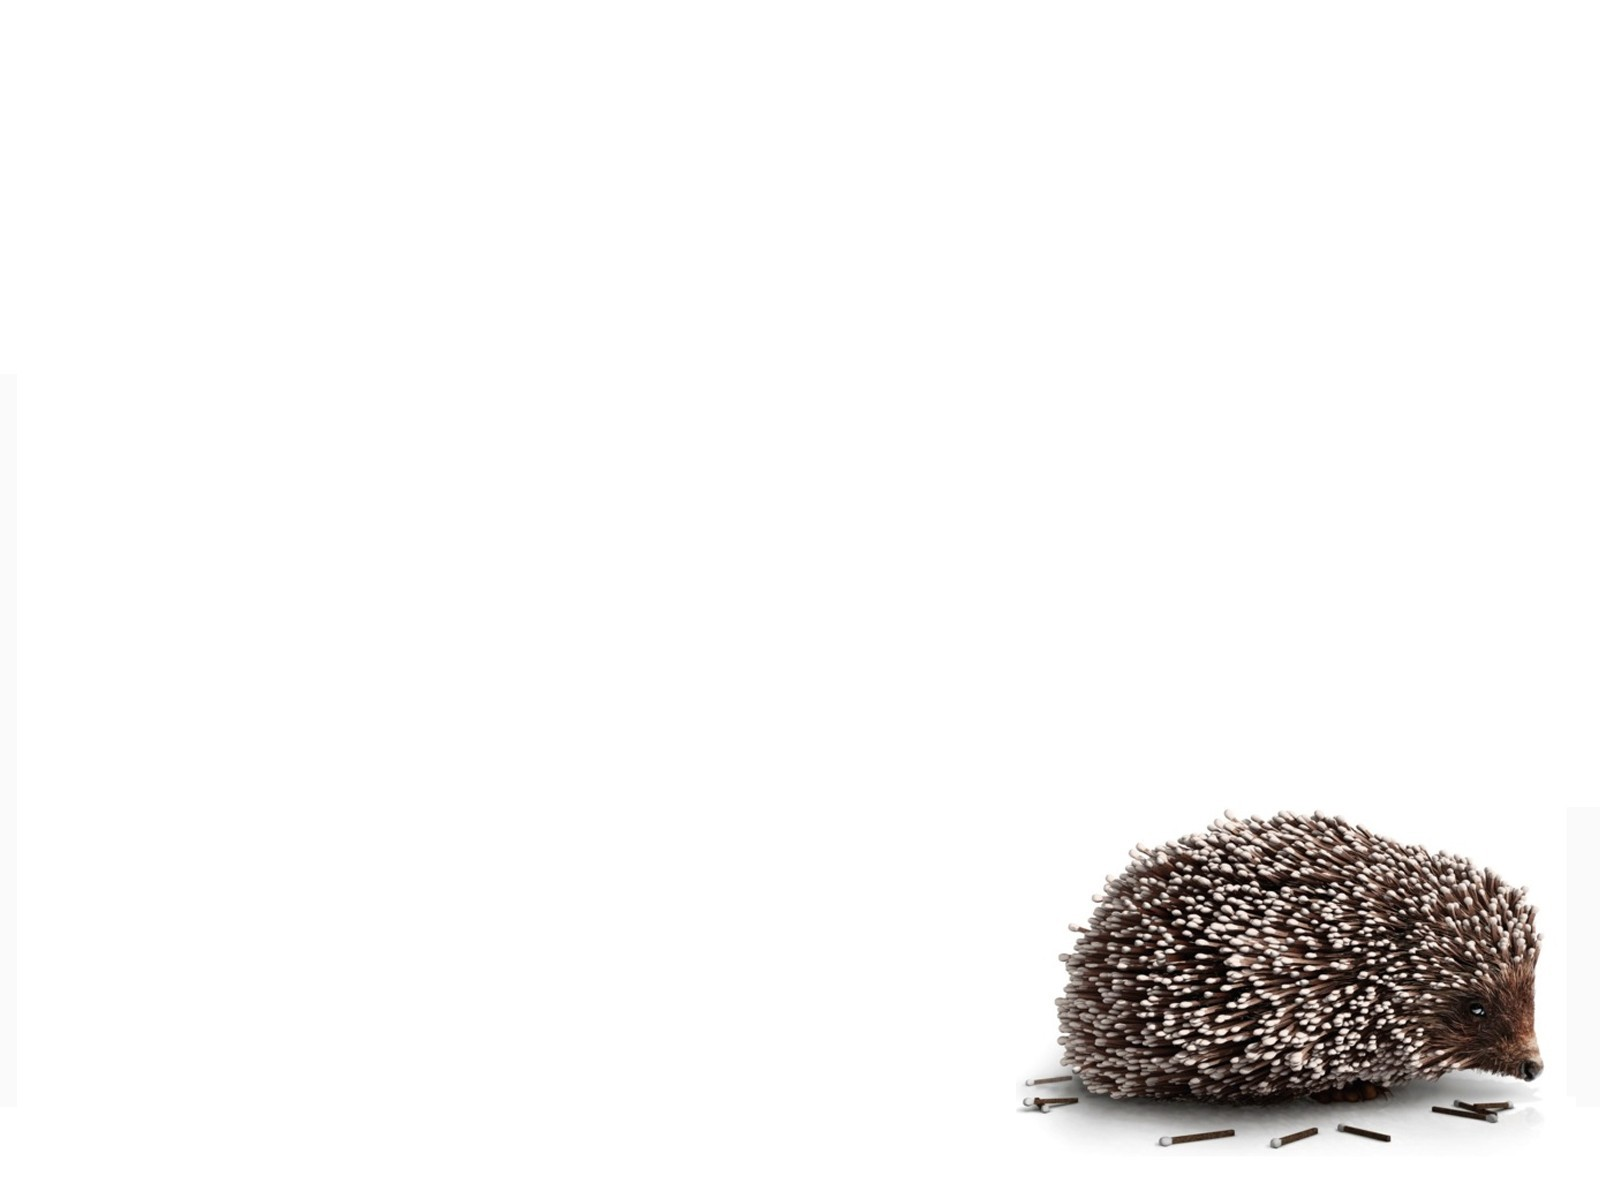 Animals hedgehogs artwork Simple HD Wallpaper